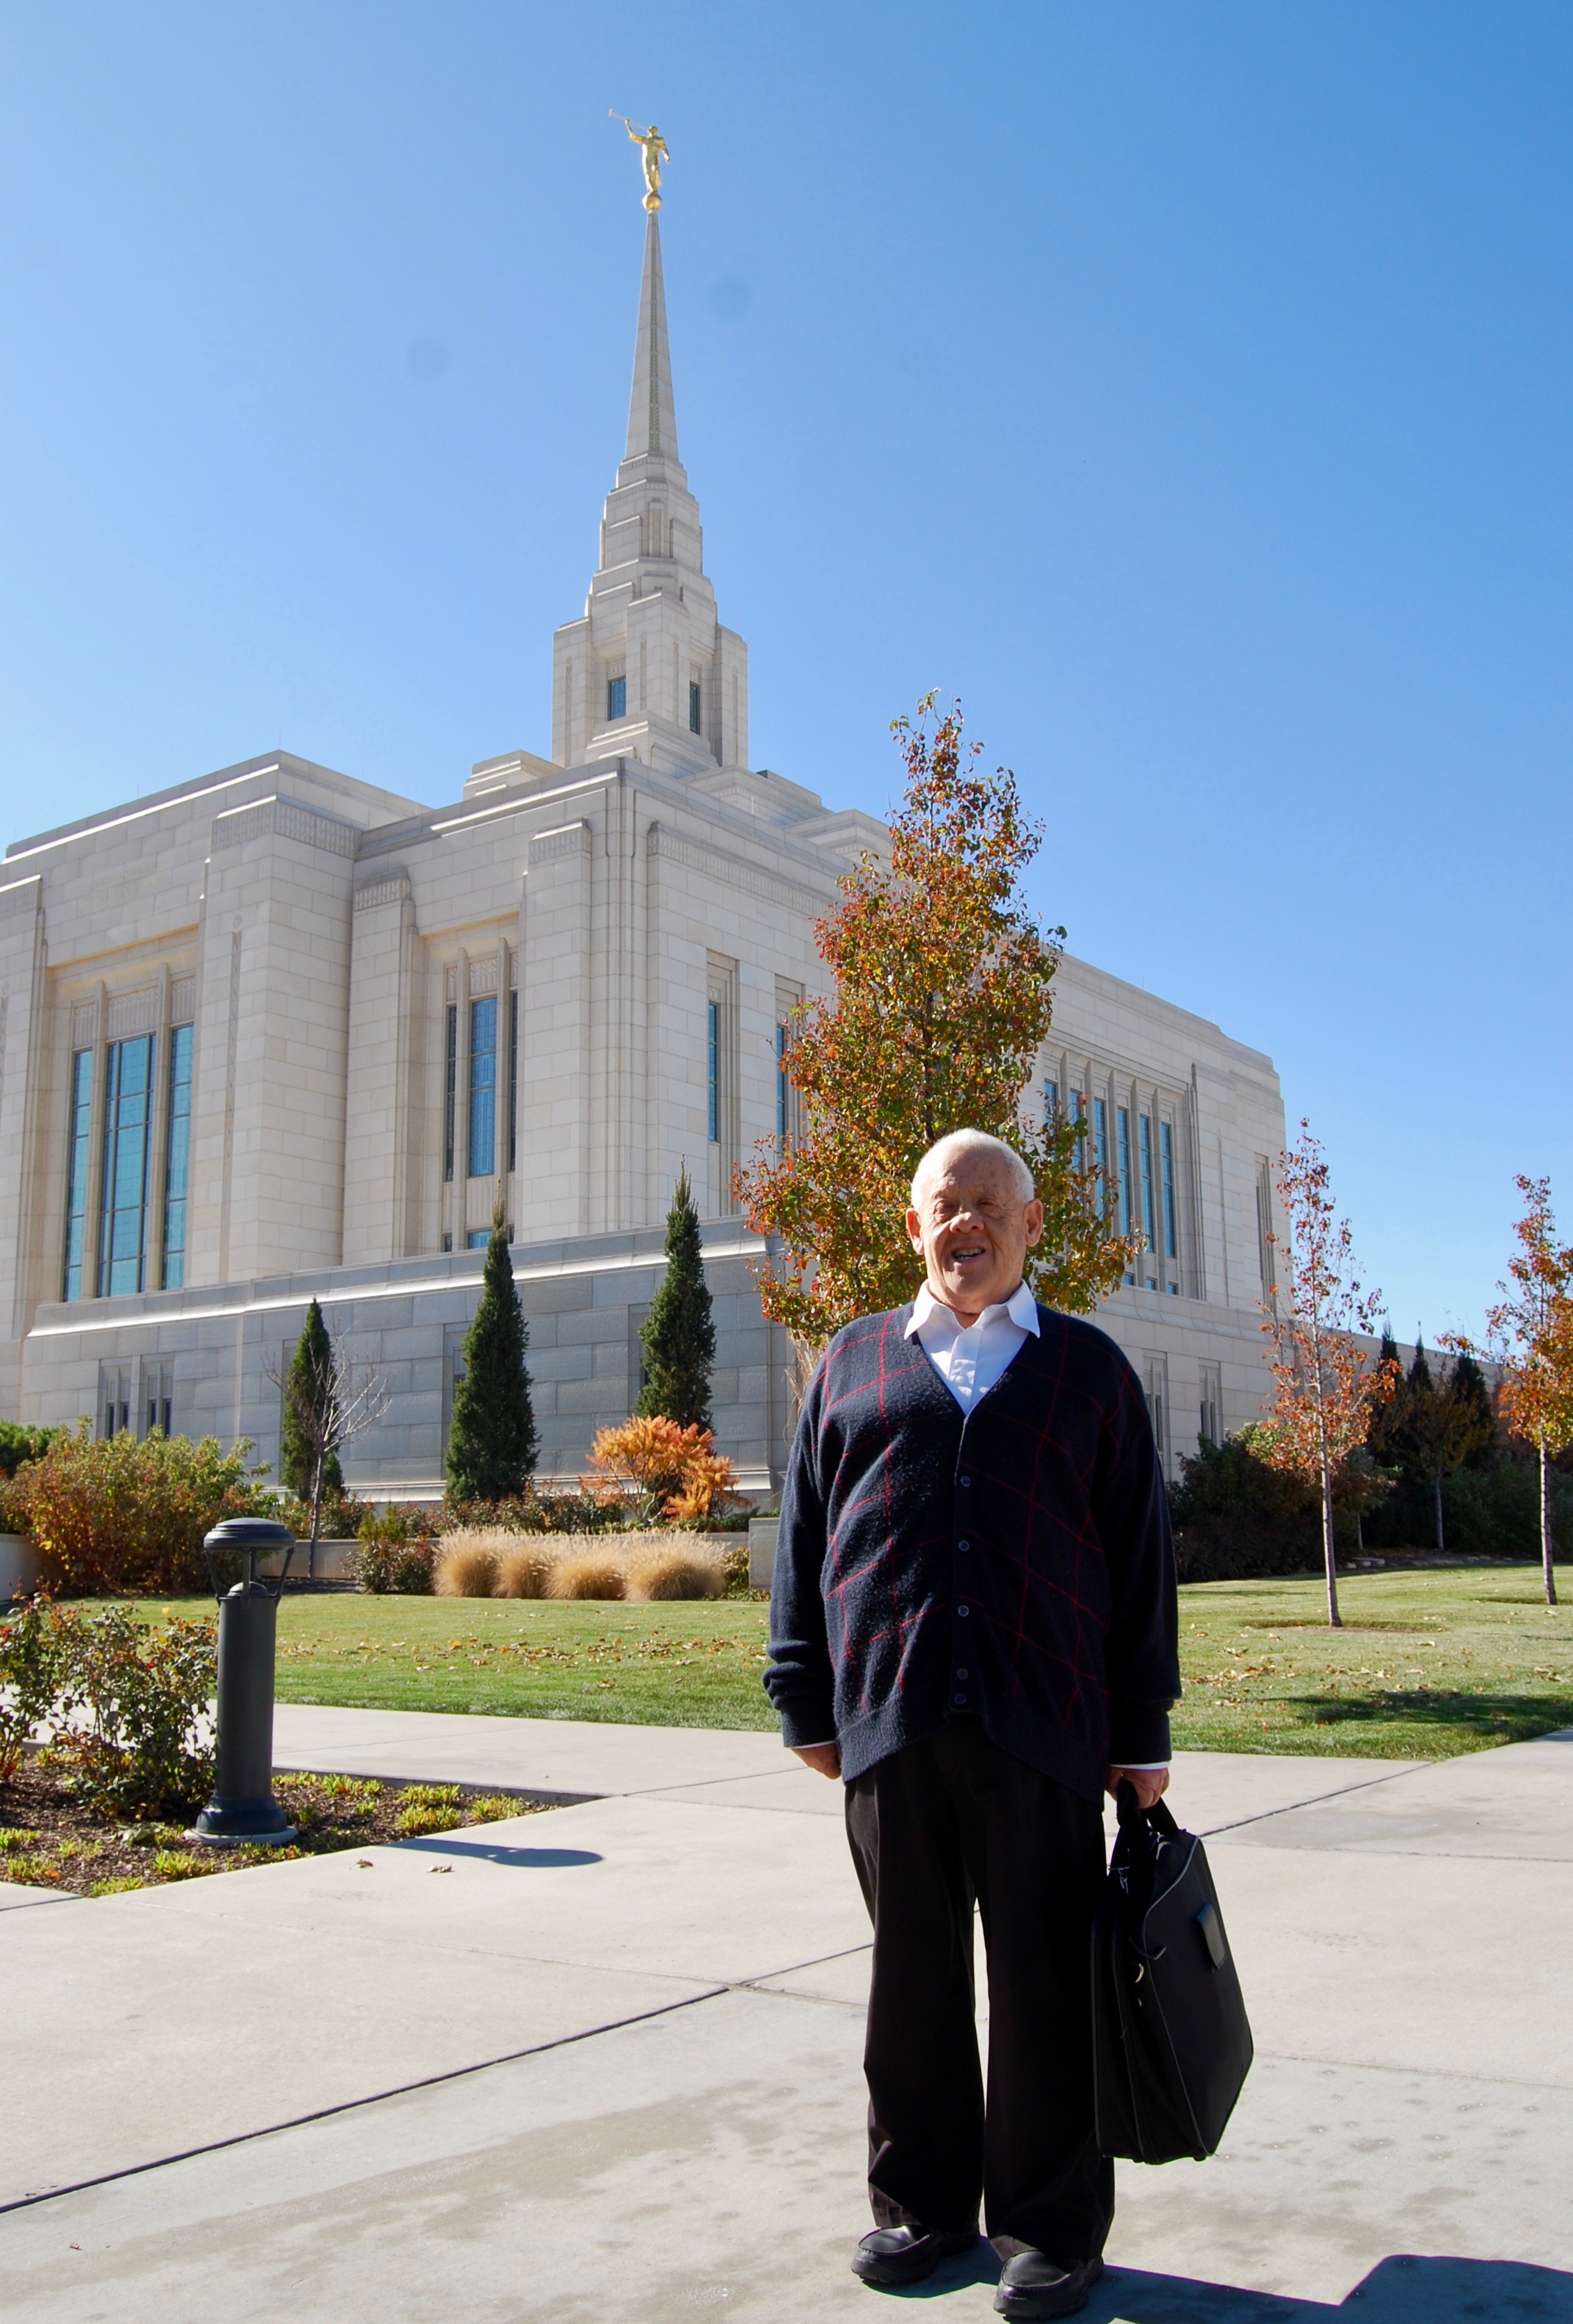 Dennis Preece stands outside the Ogden Utah Temple after attending his daily endowment sessions on Wednesday, Oct. 30, 2019.